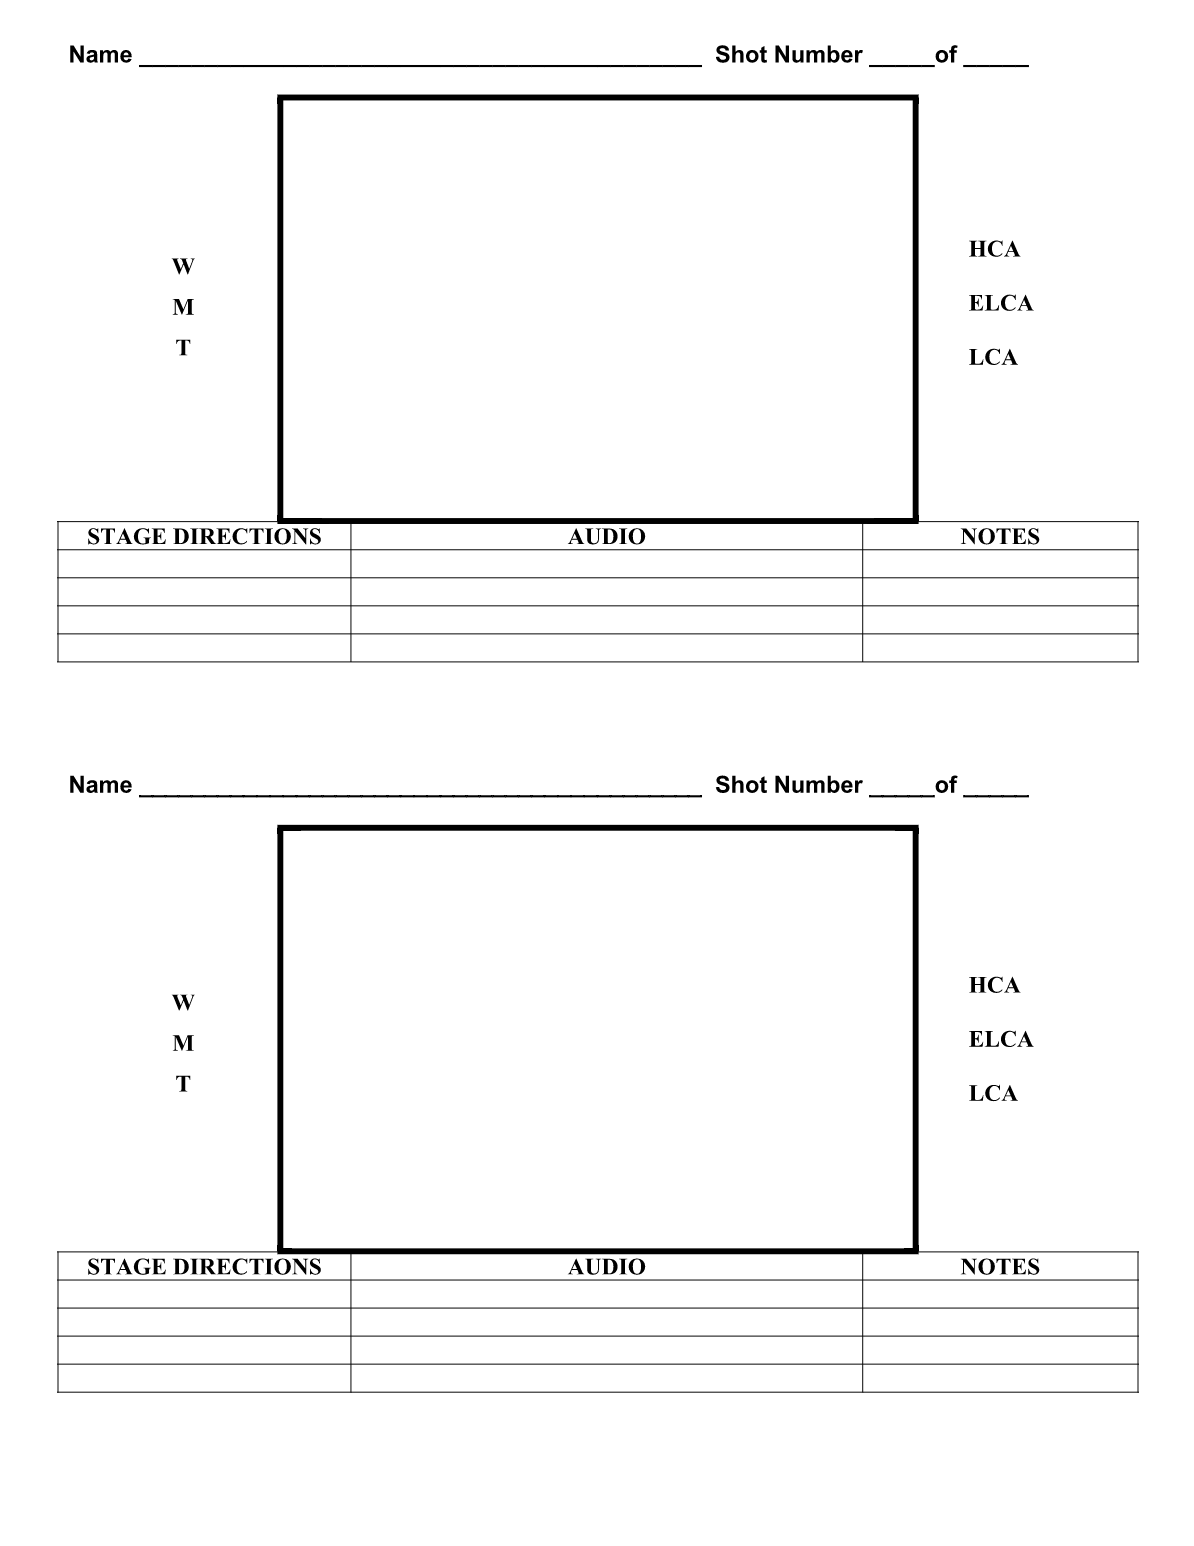 Downloadable Storyboard Templates For Broadcast Journalism